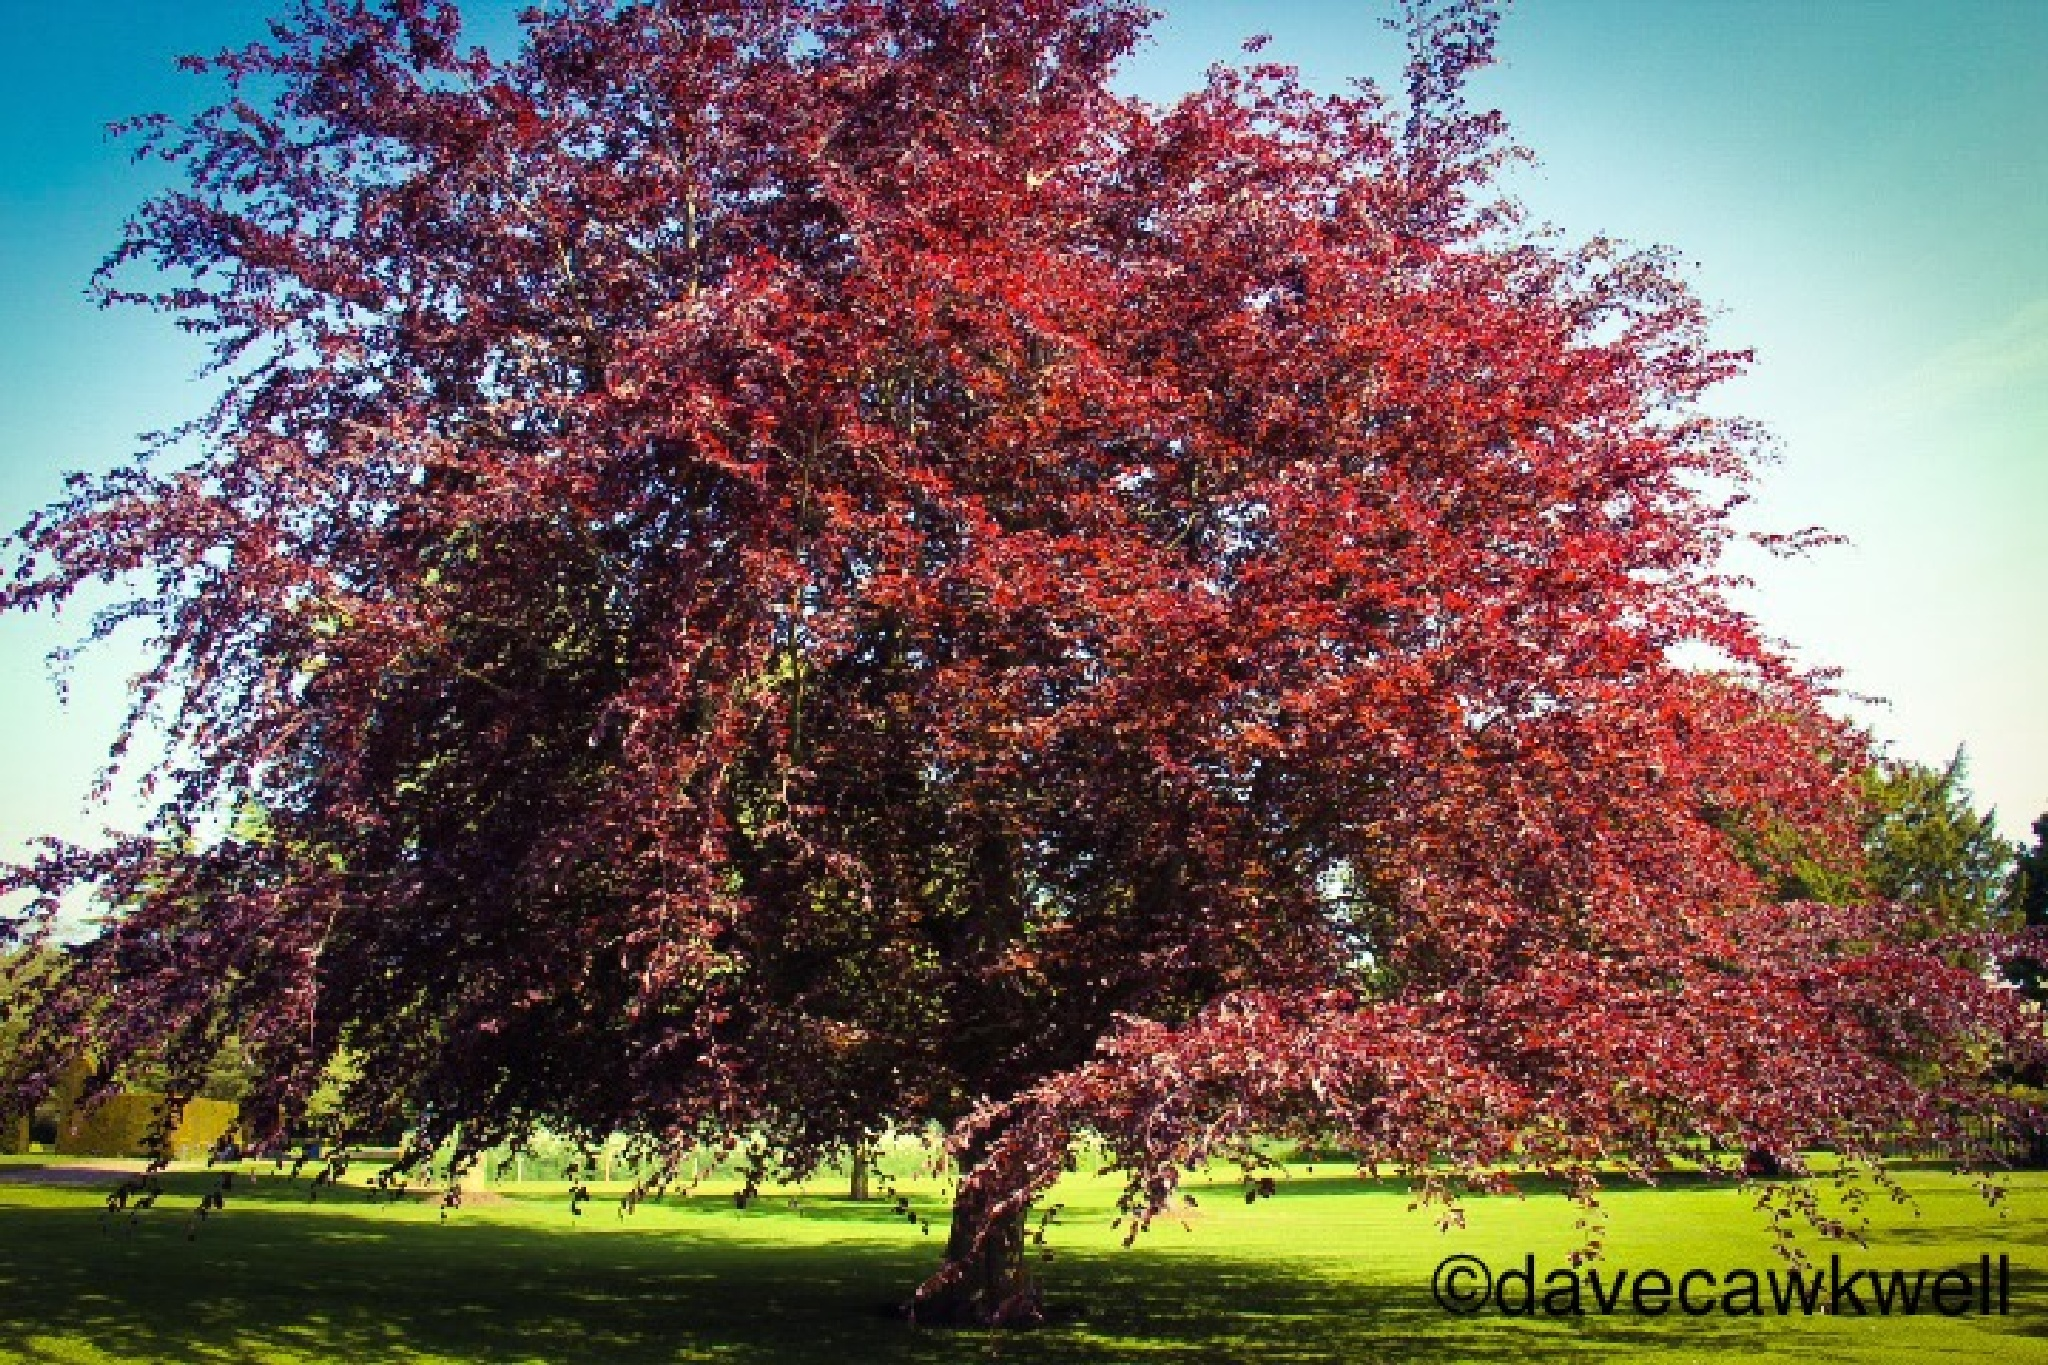 The Red Tree by Dave Cawkwell